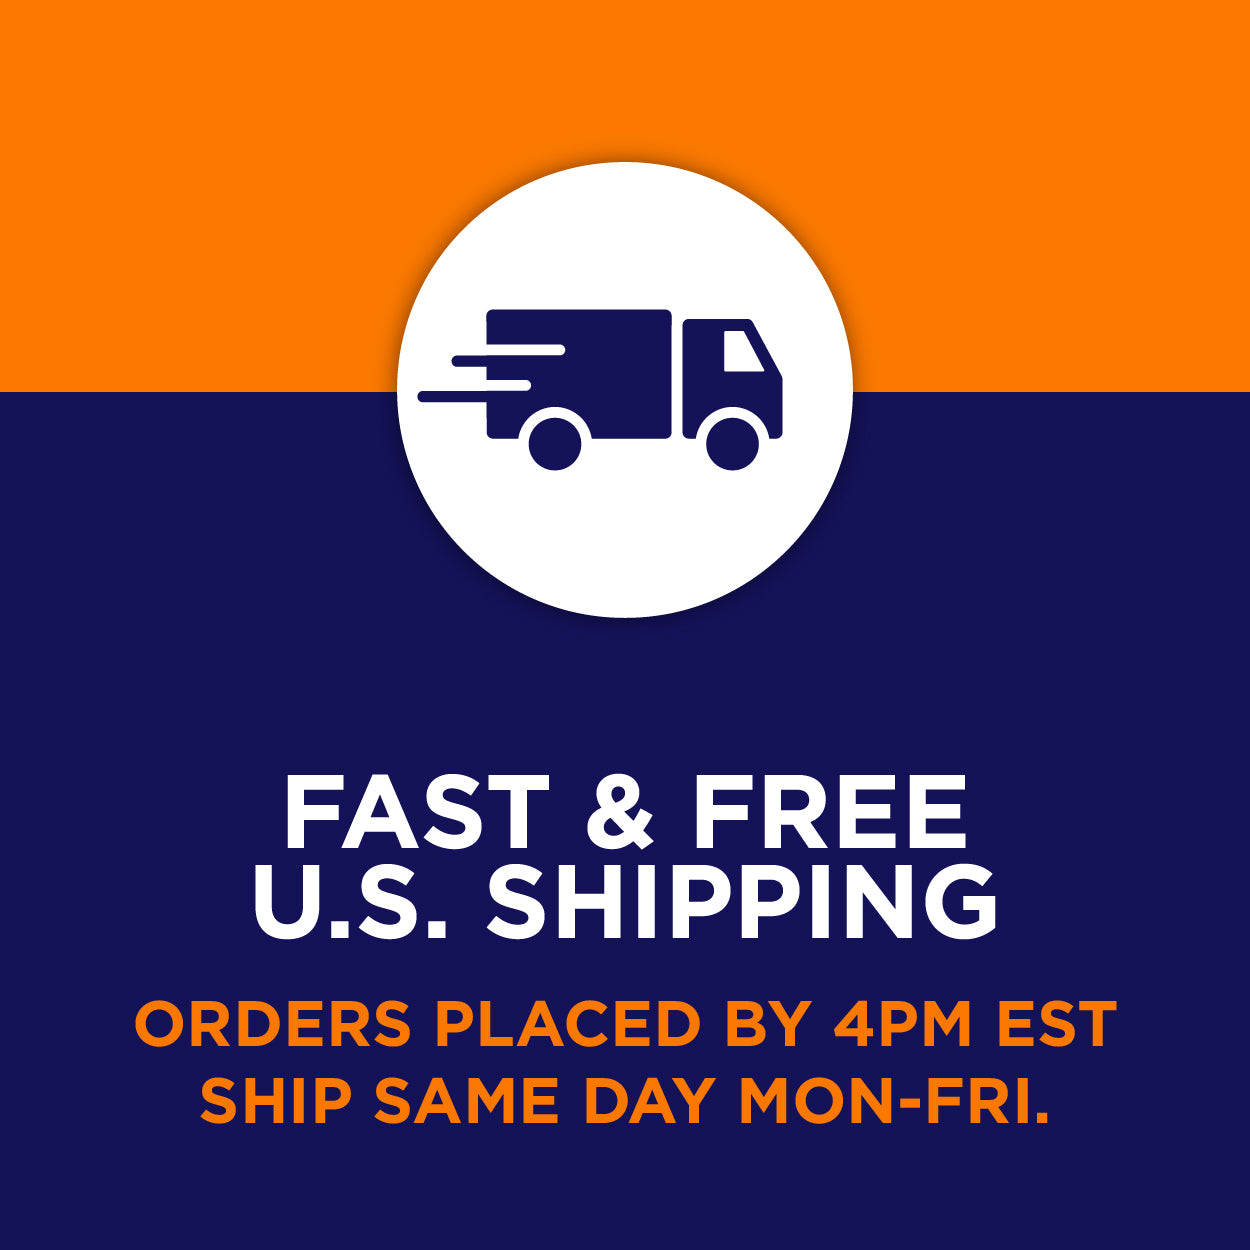 Orders placed by 4 P.M. EST ship the same day Mon. - Fri.